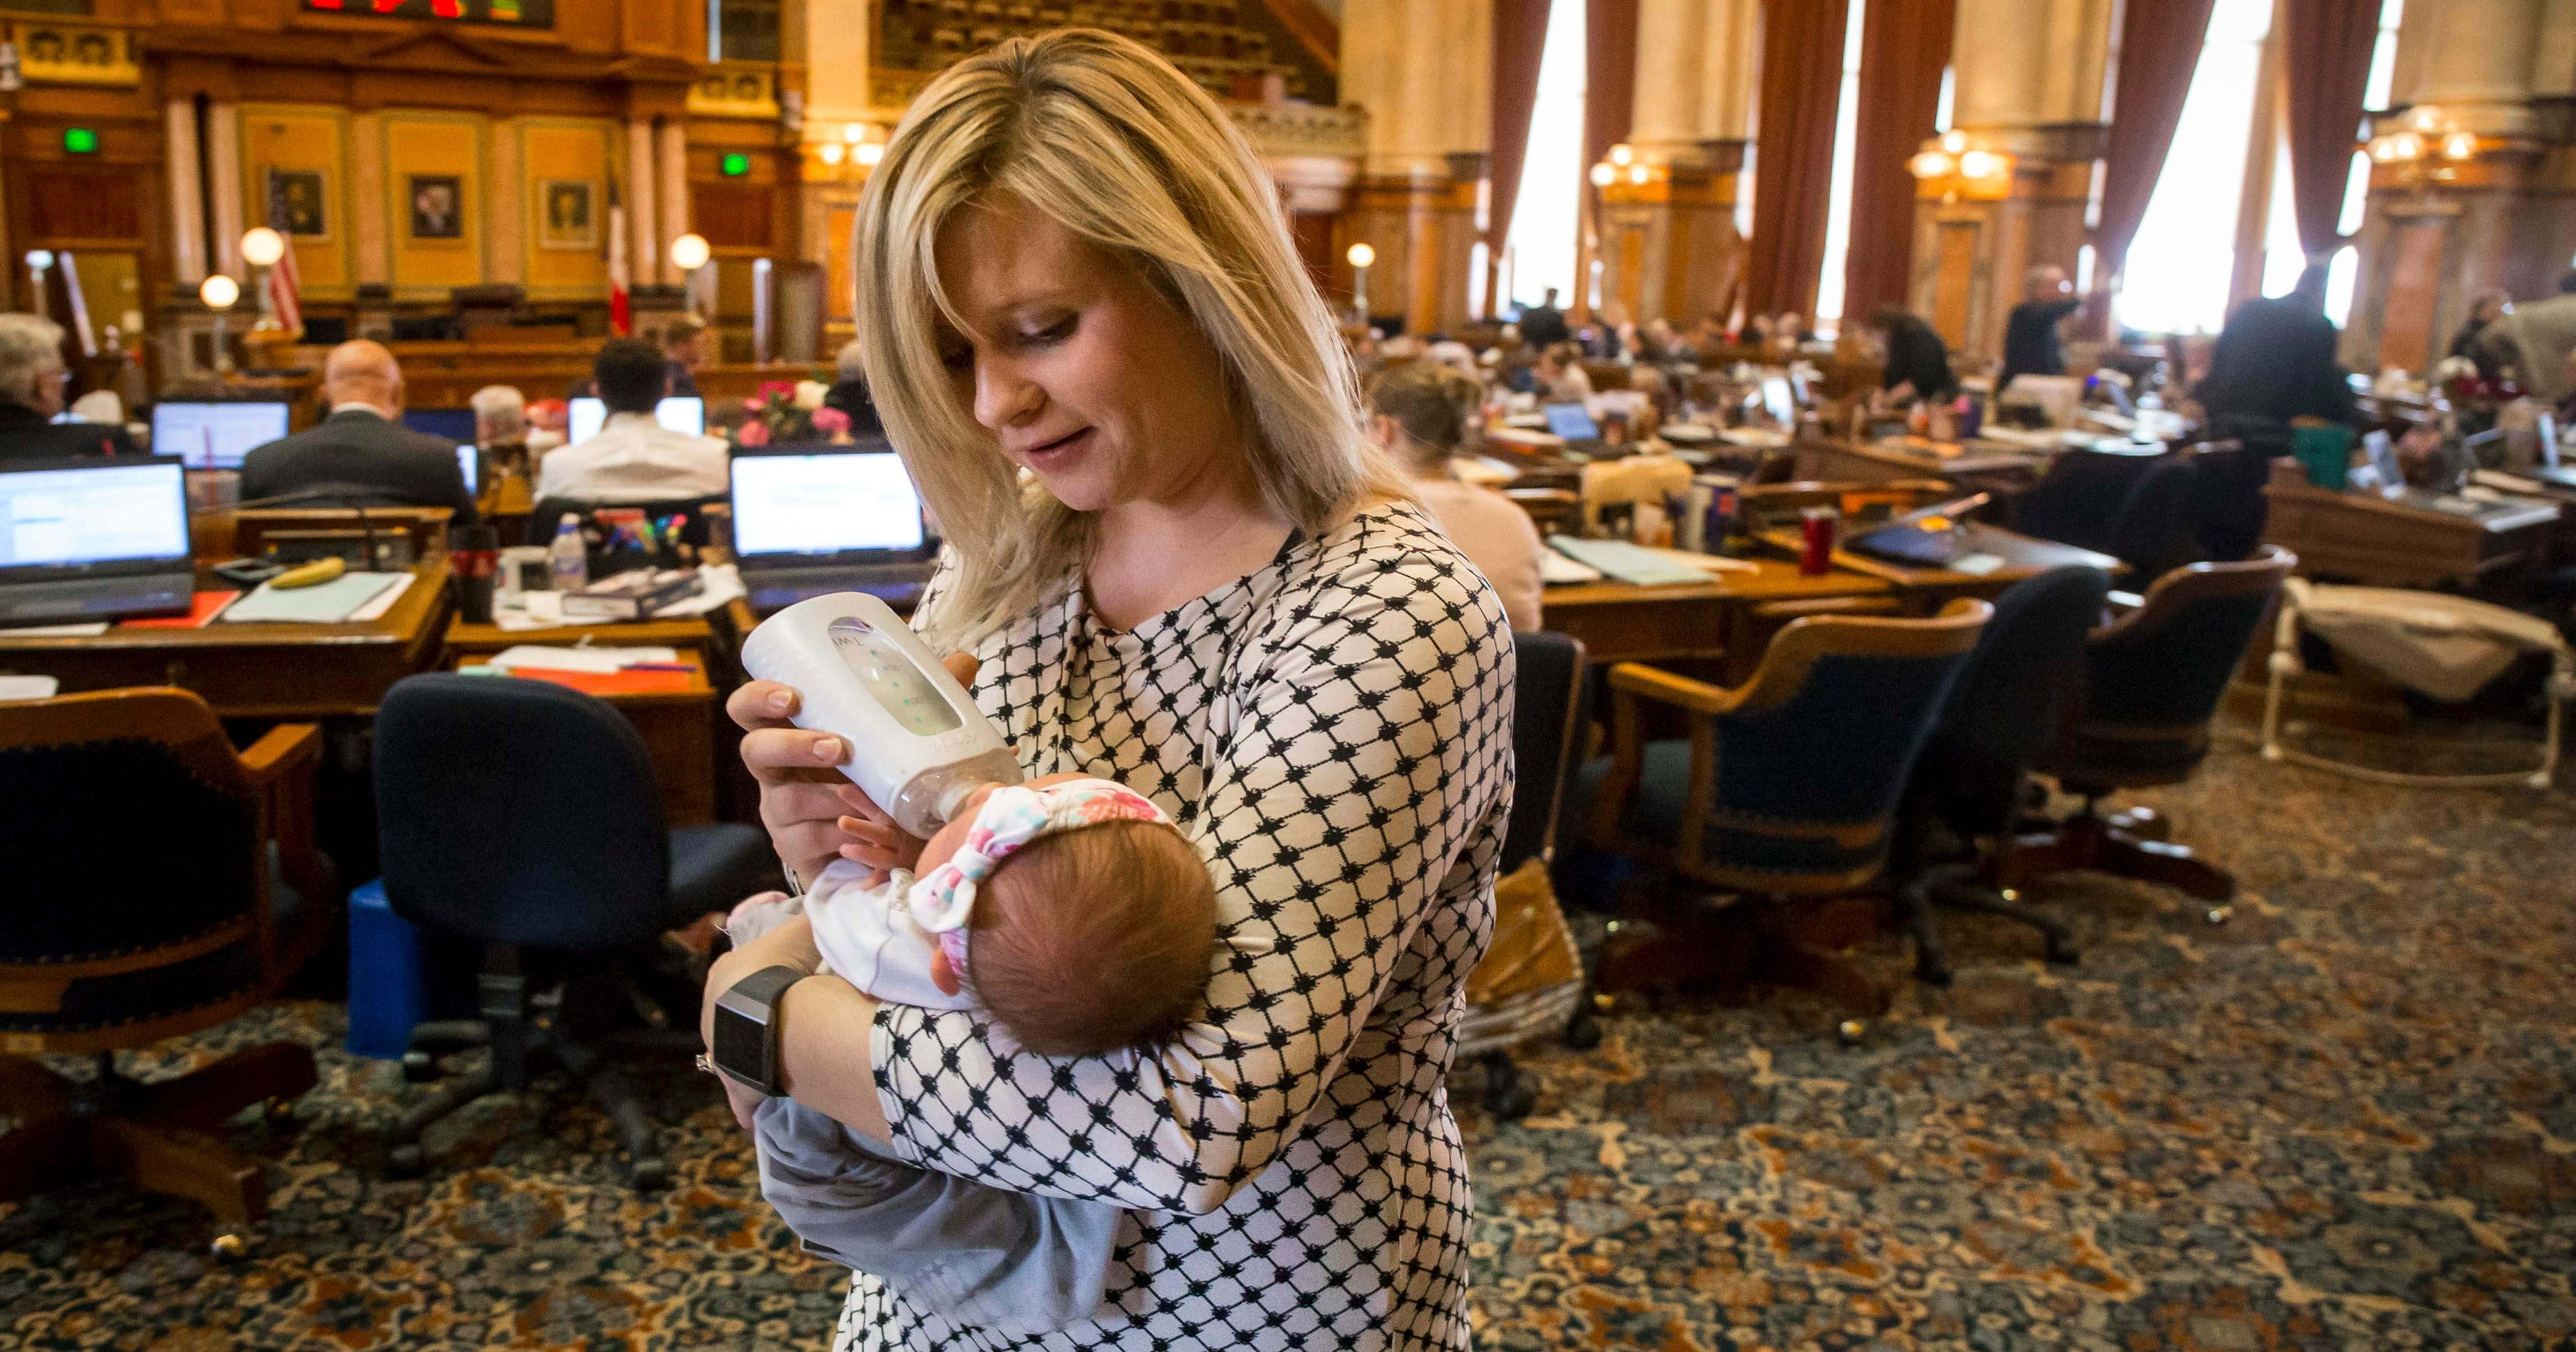 Iowa lawmaker is bringing her baby to the House